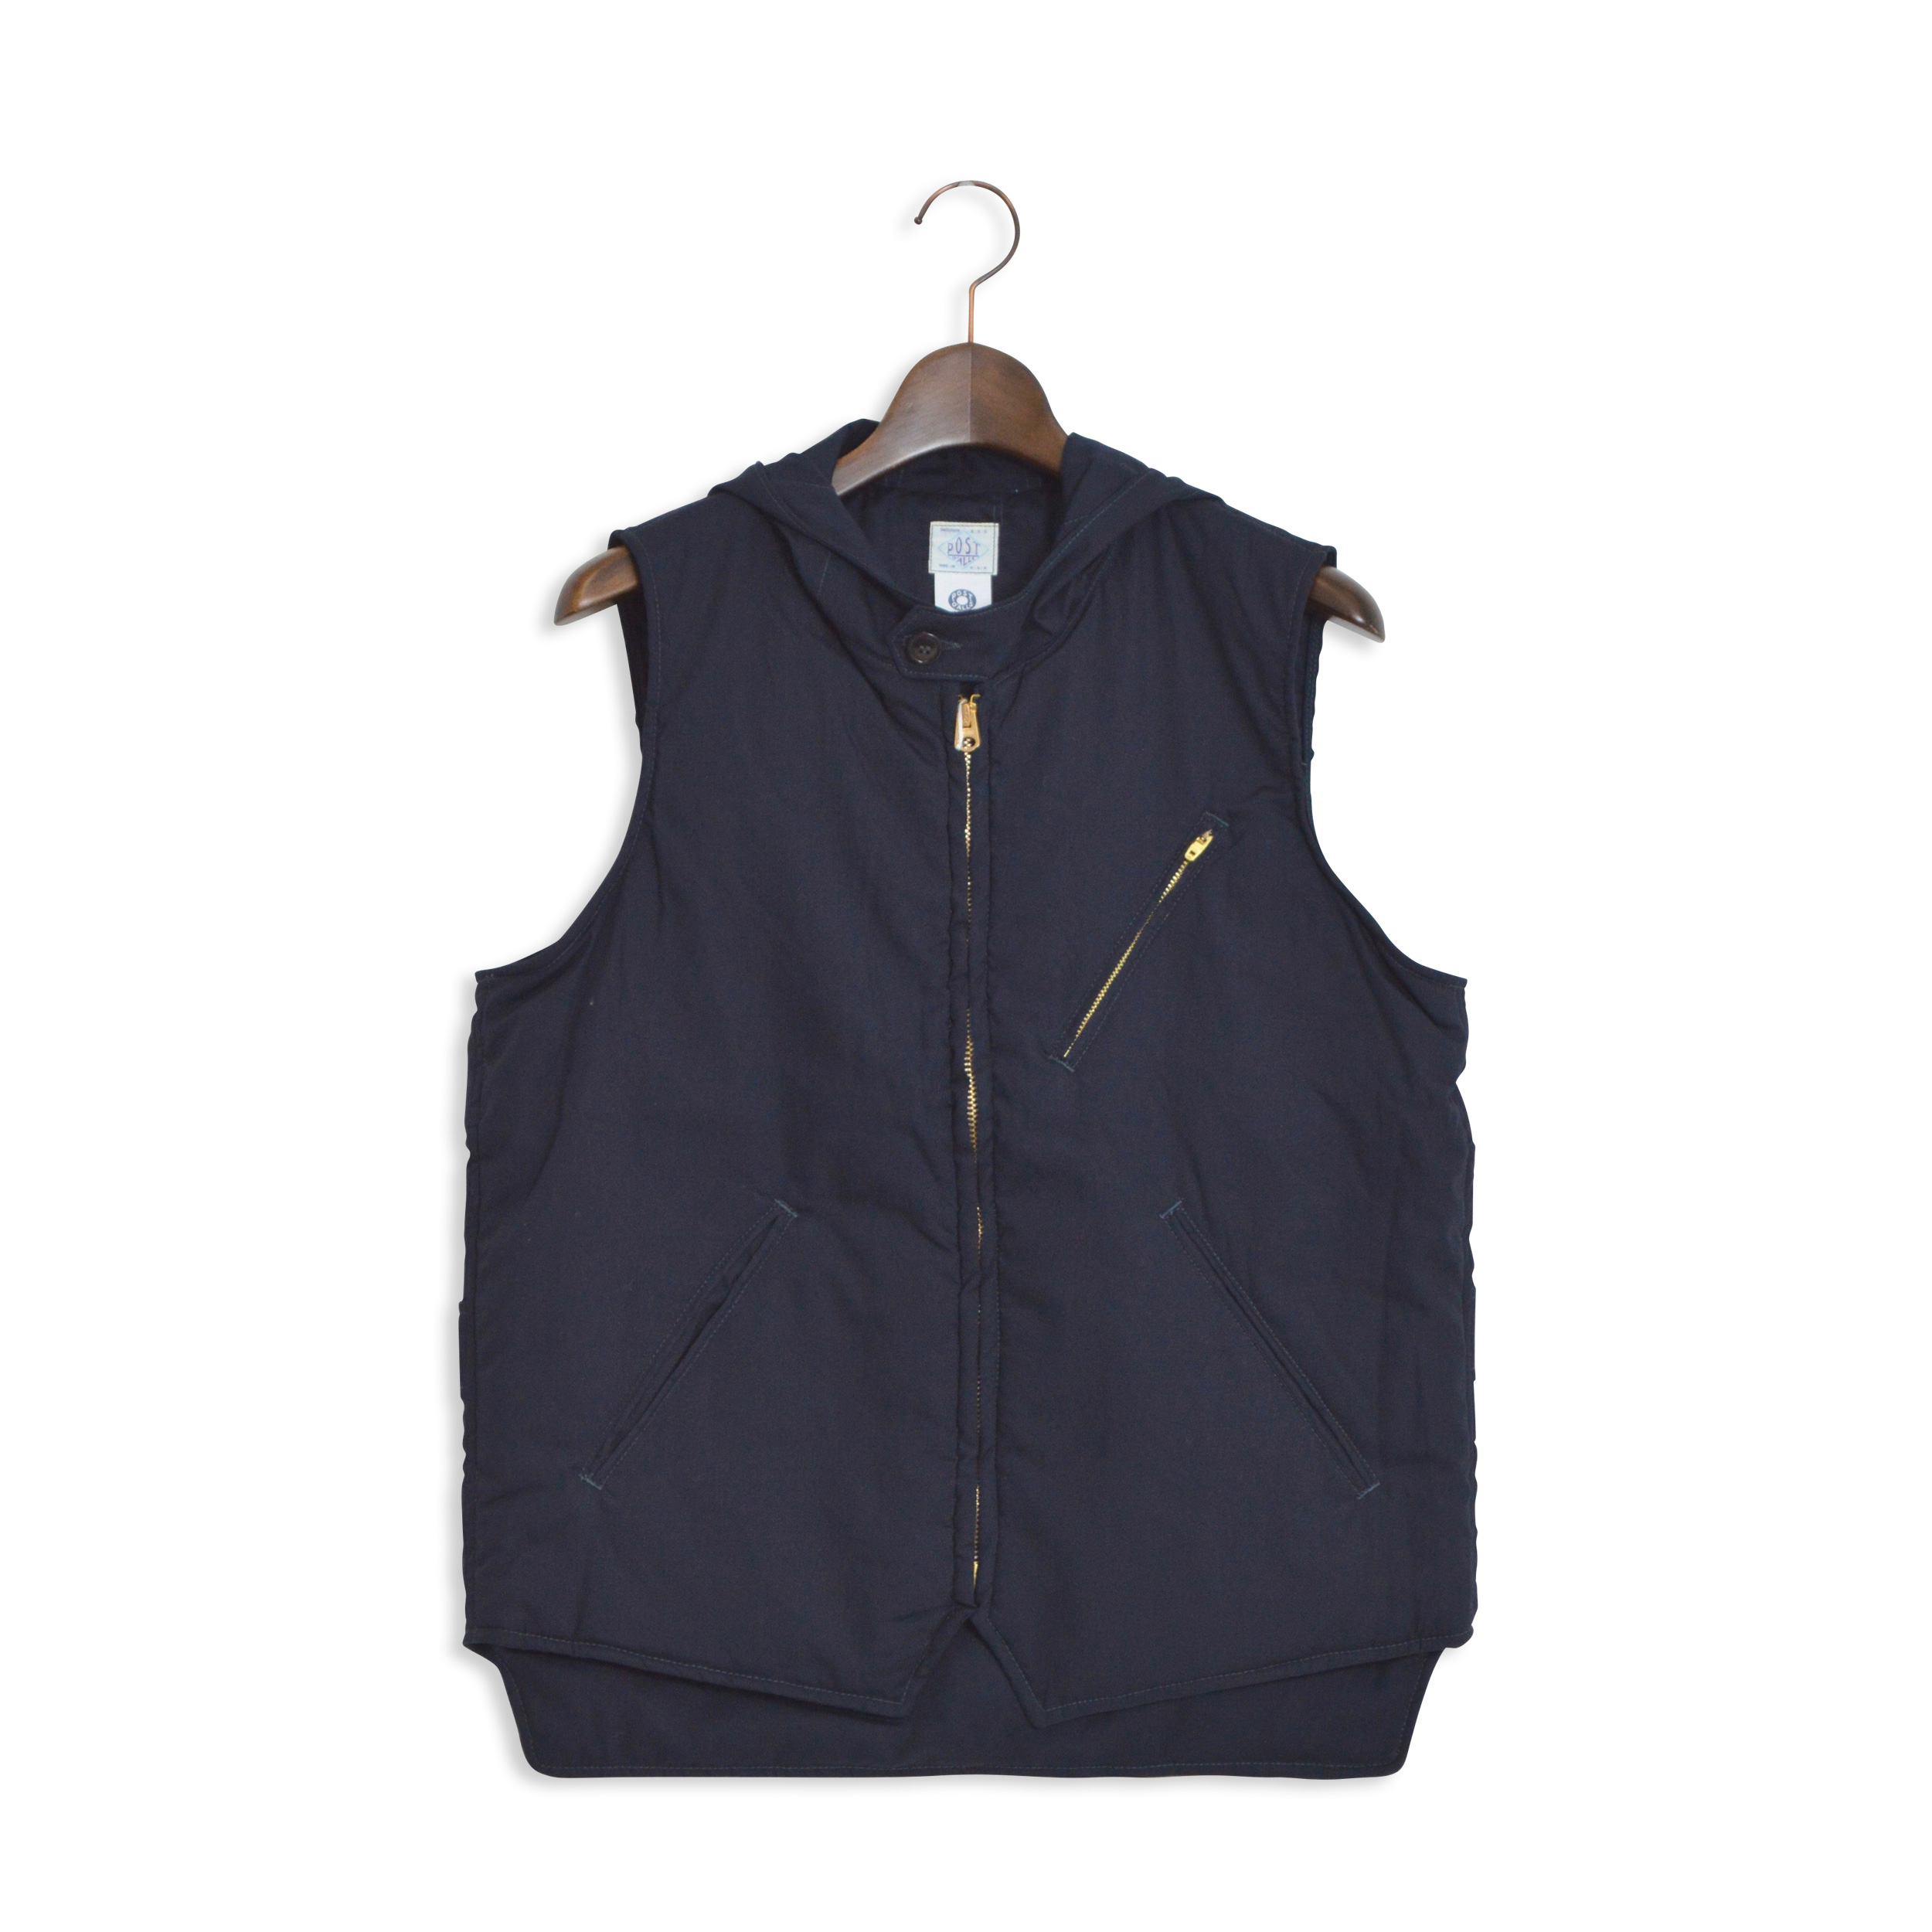 【POST O'ALLS】POST OVERALLS(ポストオーバーオールズ)/1522h E-Z CRUZ VEST HOOD/COTTON BROADCLOTH (1703)